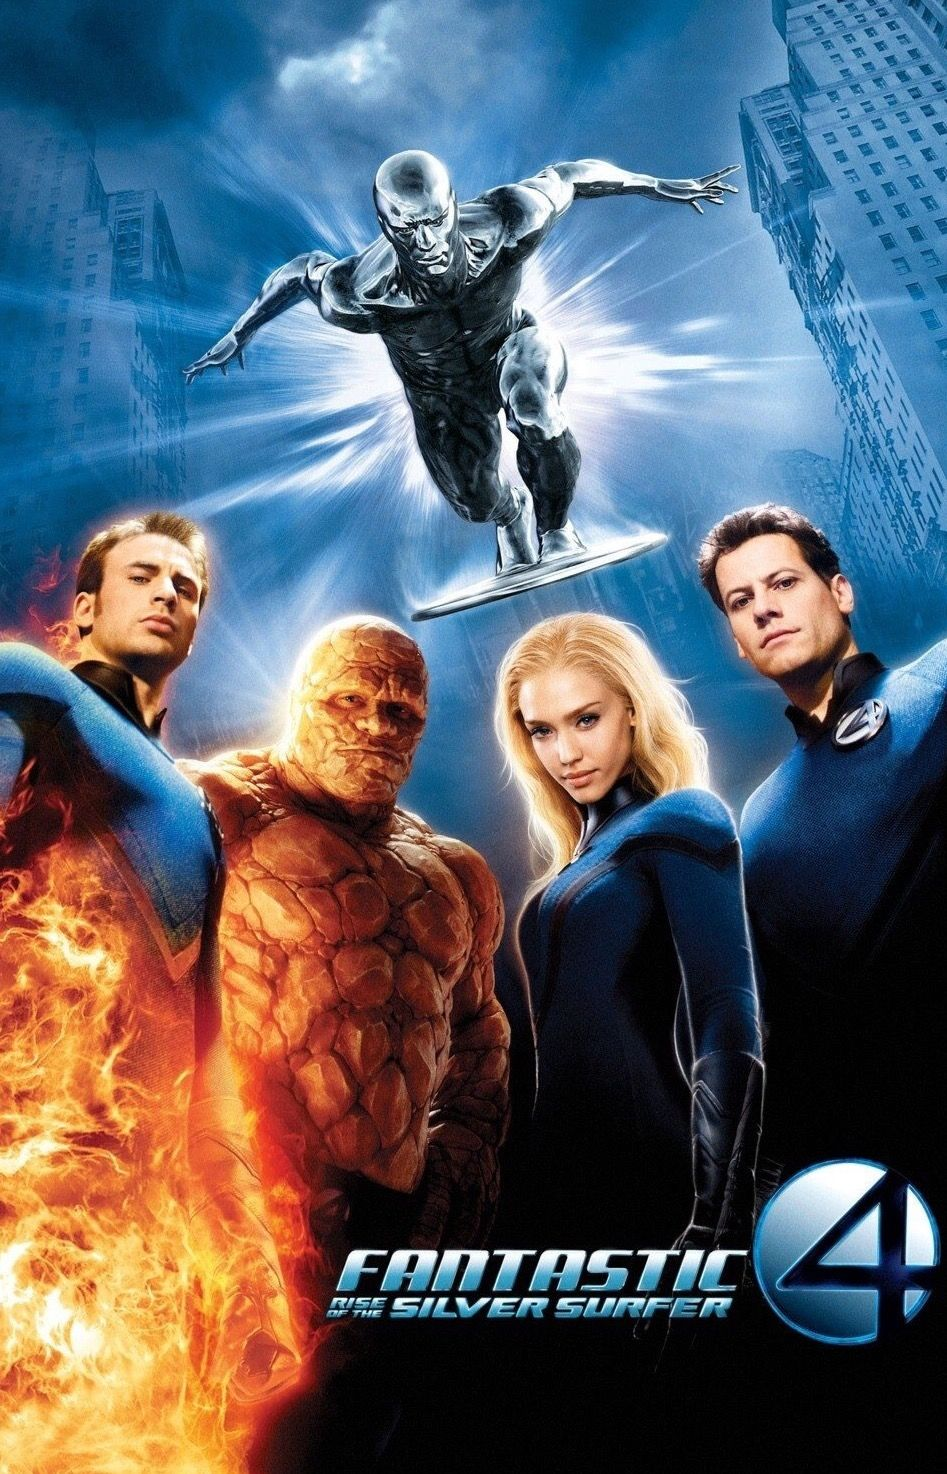 Fantastic Four Rise Of The Silver Surfer 2007 Cartazes De Cinema Filmes Quarteto Fantastico